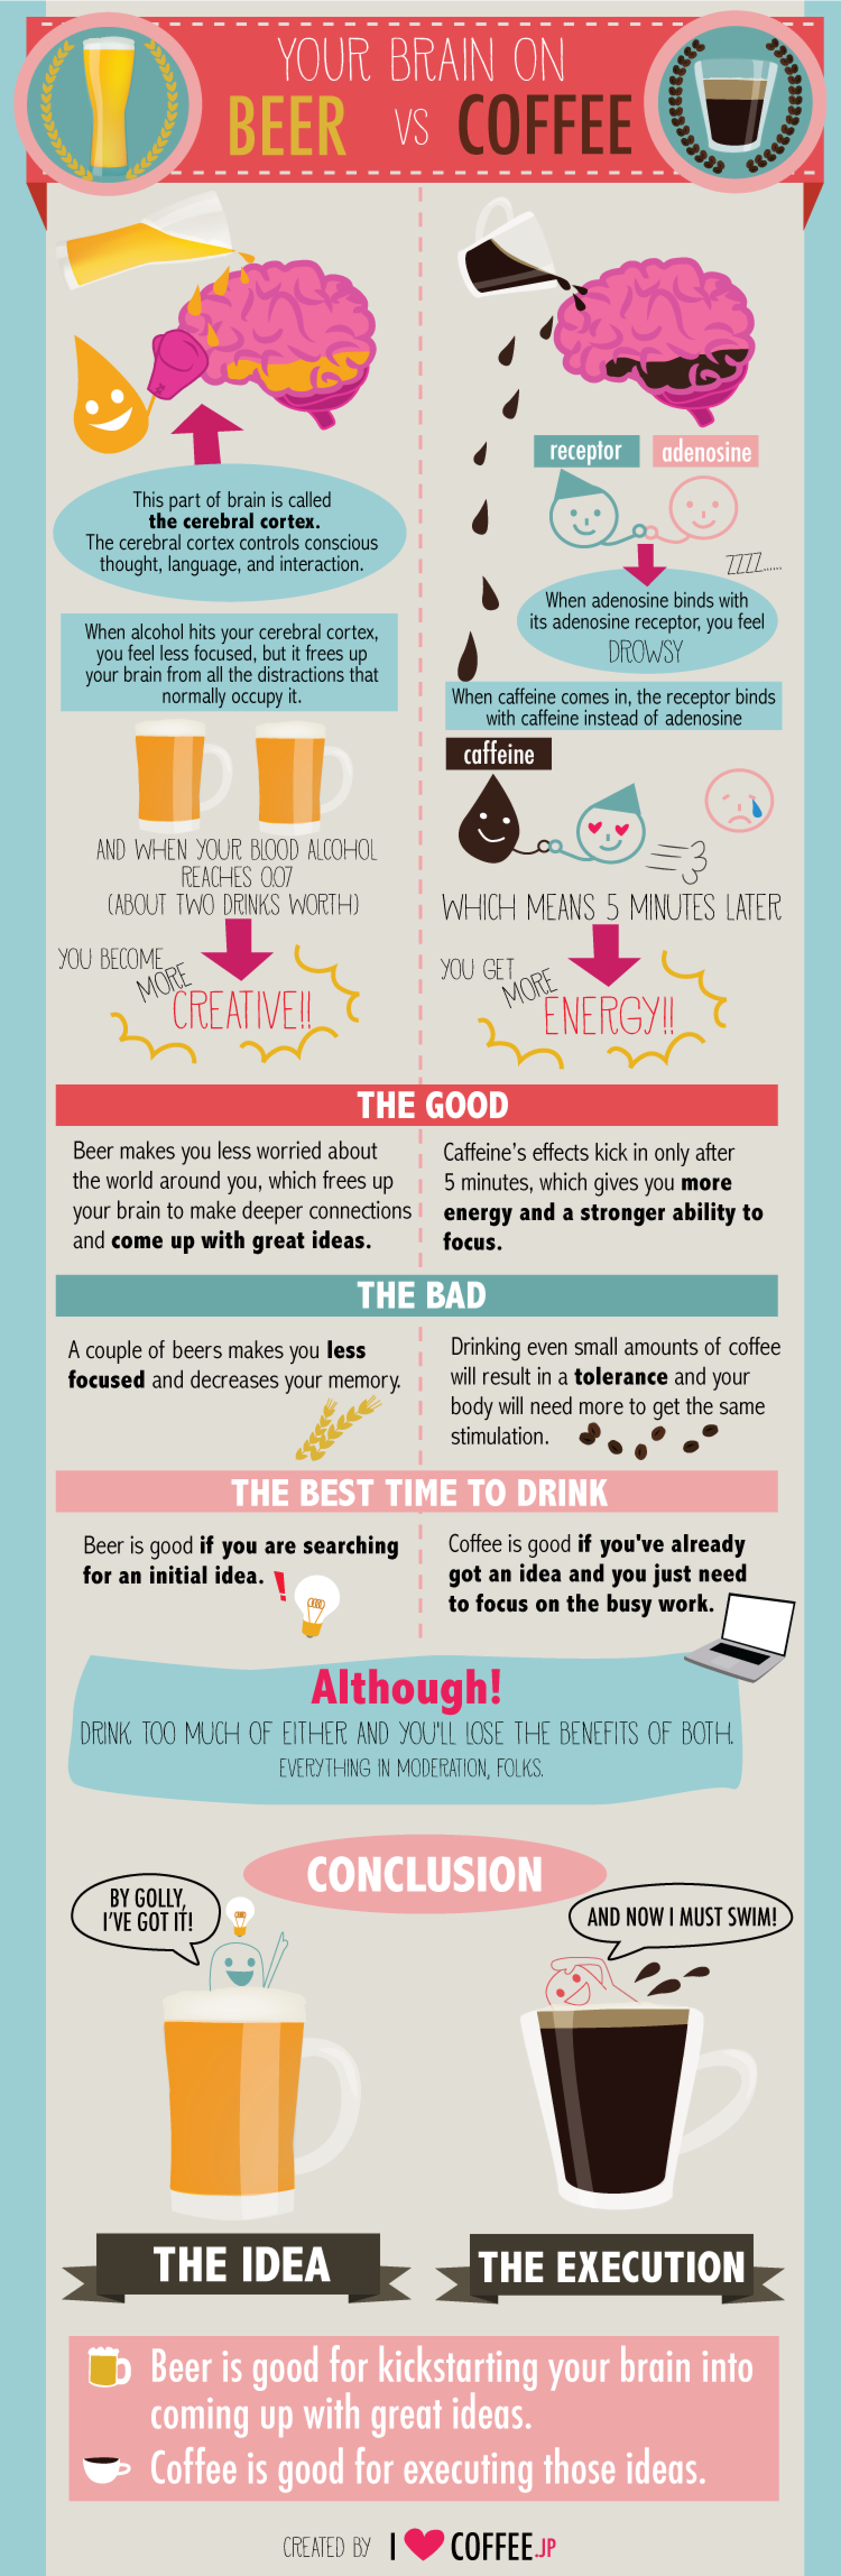 Your Brain on Beer vs. Coffee Infographic